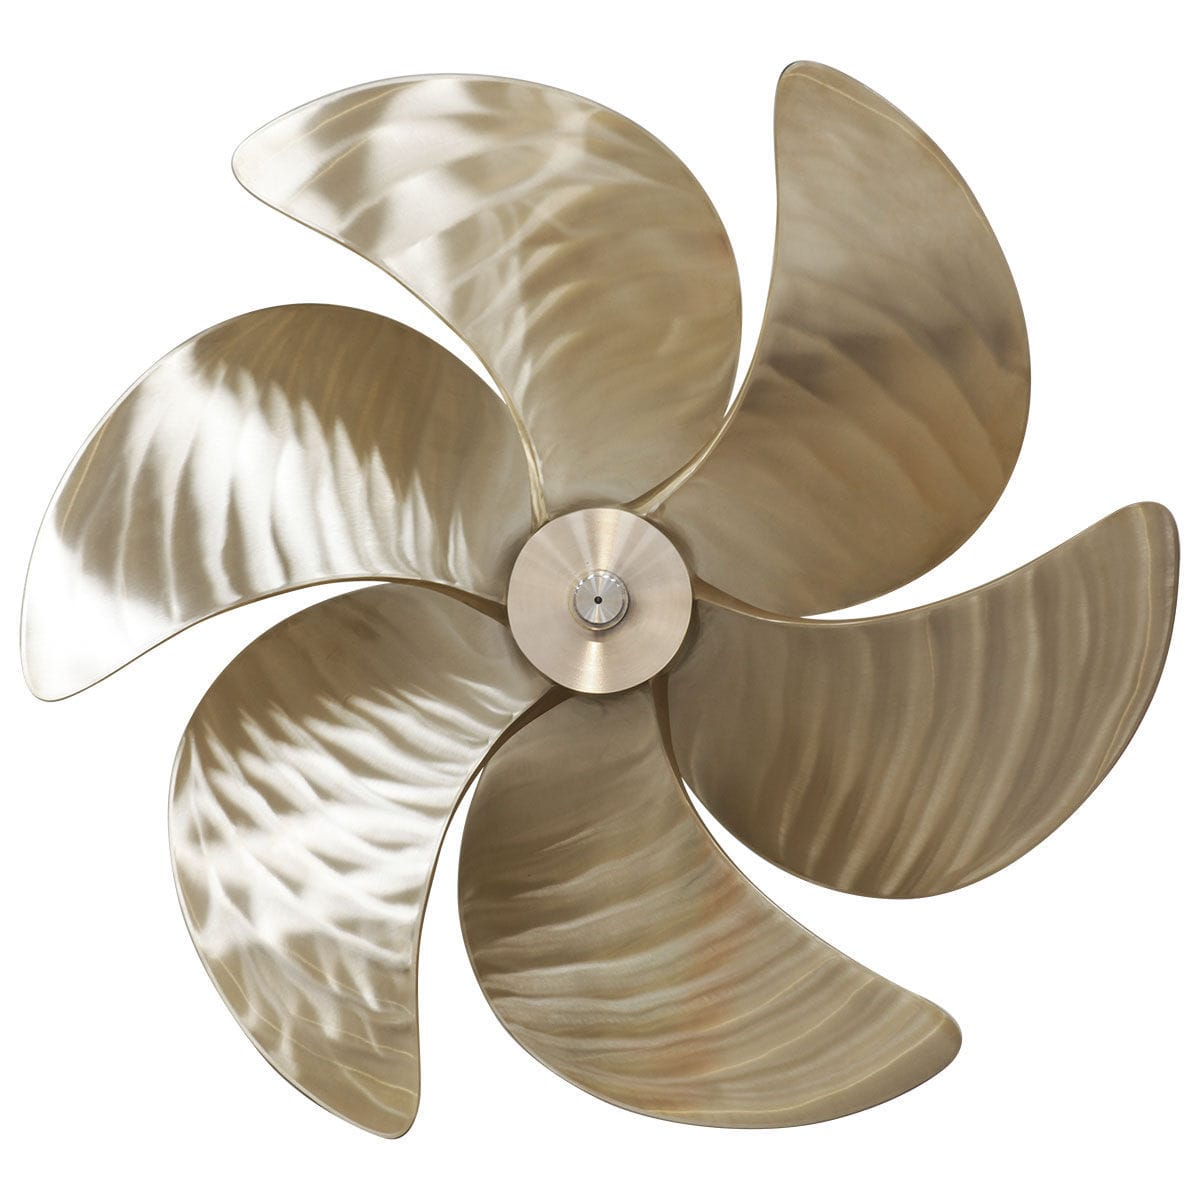 Ship propeller / for yachts / fixed-pitch / shaft drive - C